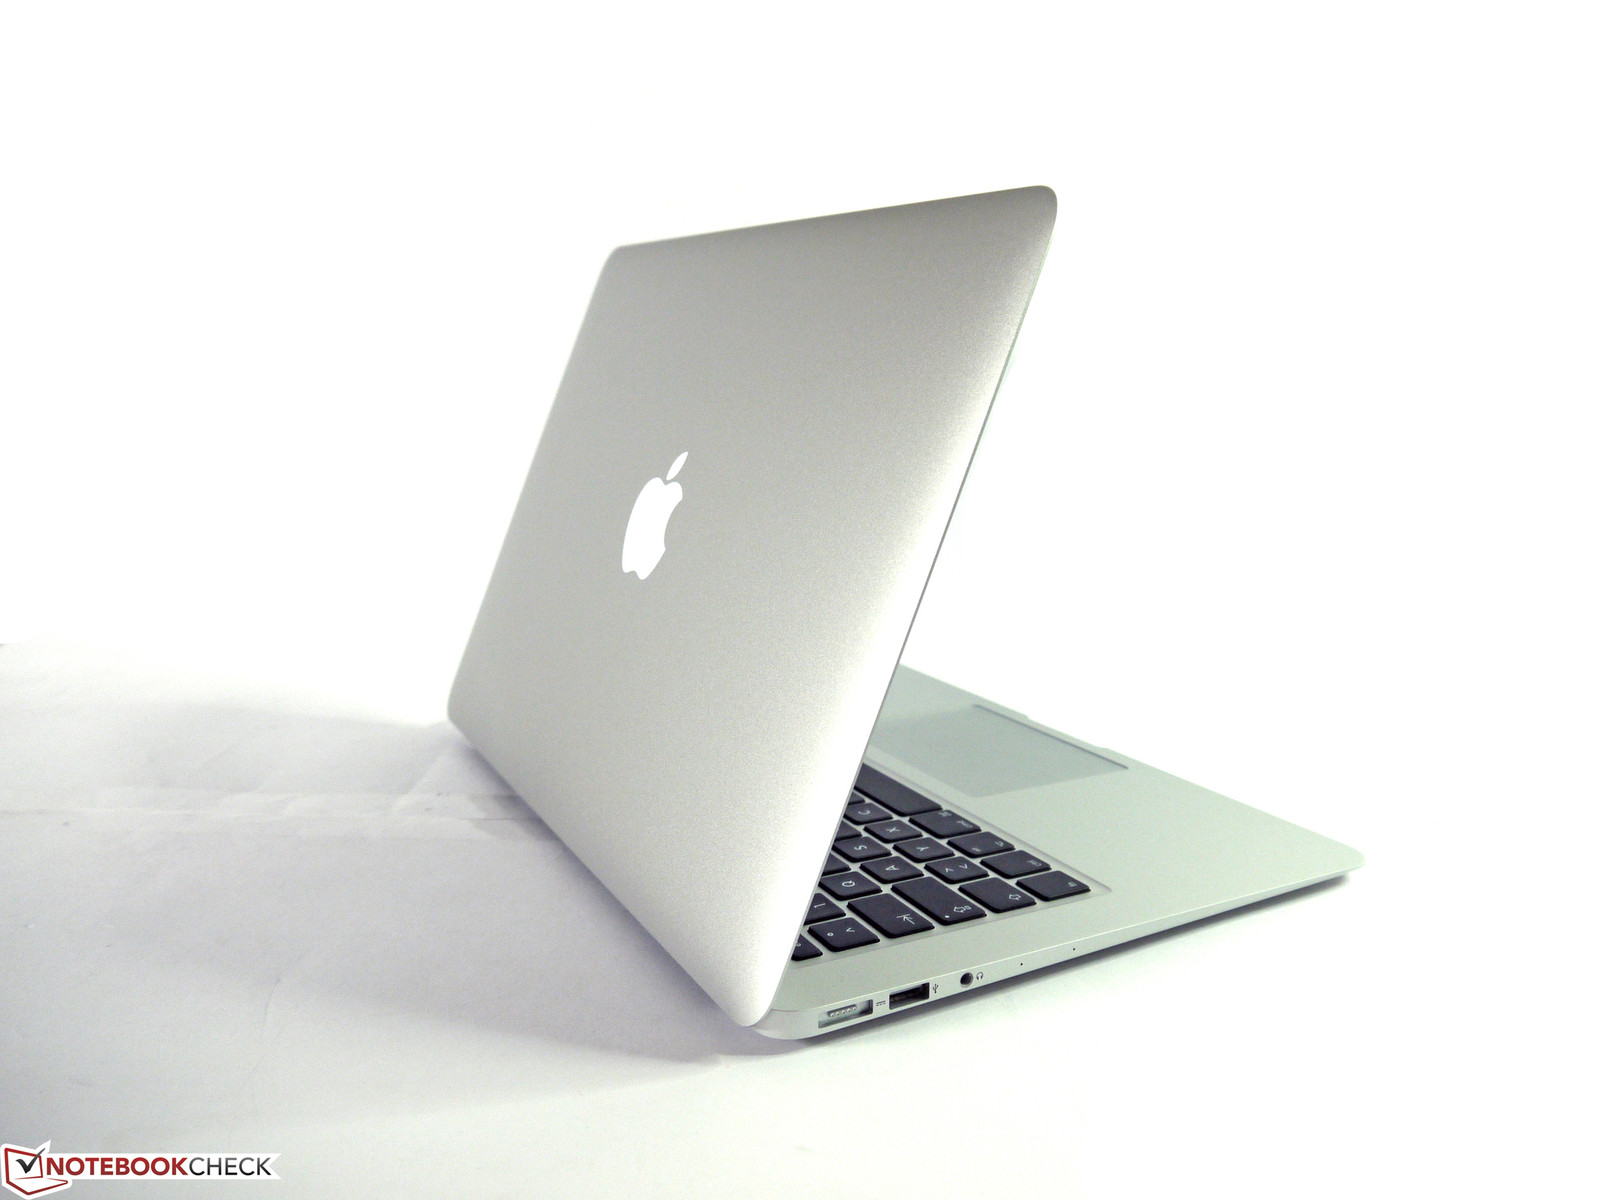 Apple Macbook Air 13 2015 Notebook Review Reviews Mmgf2 Silver Full Resolution